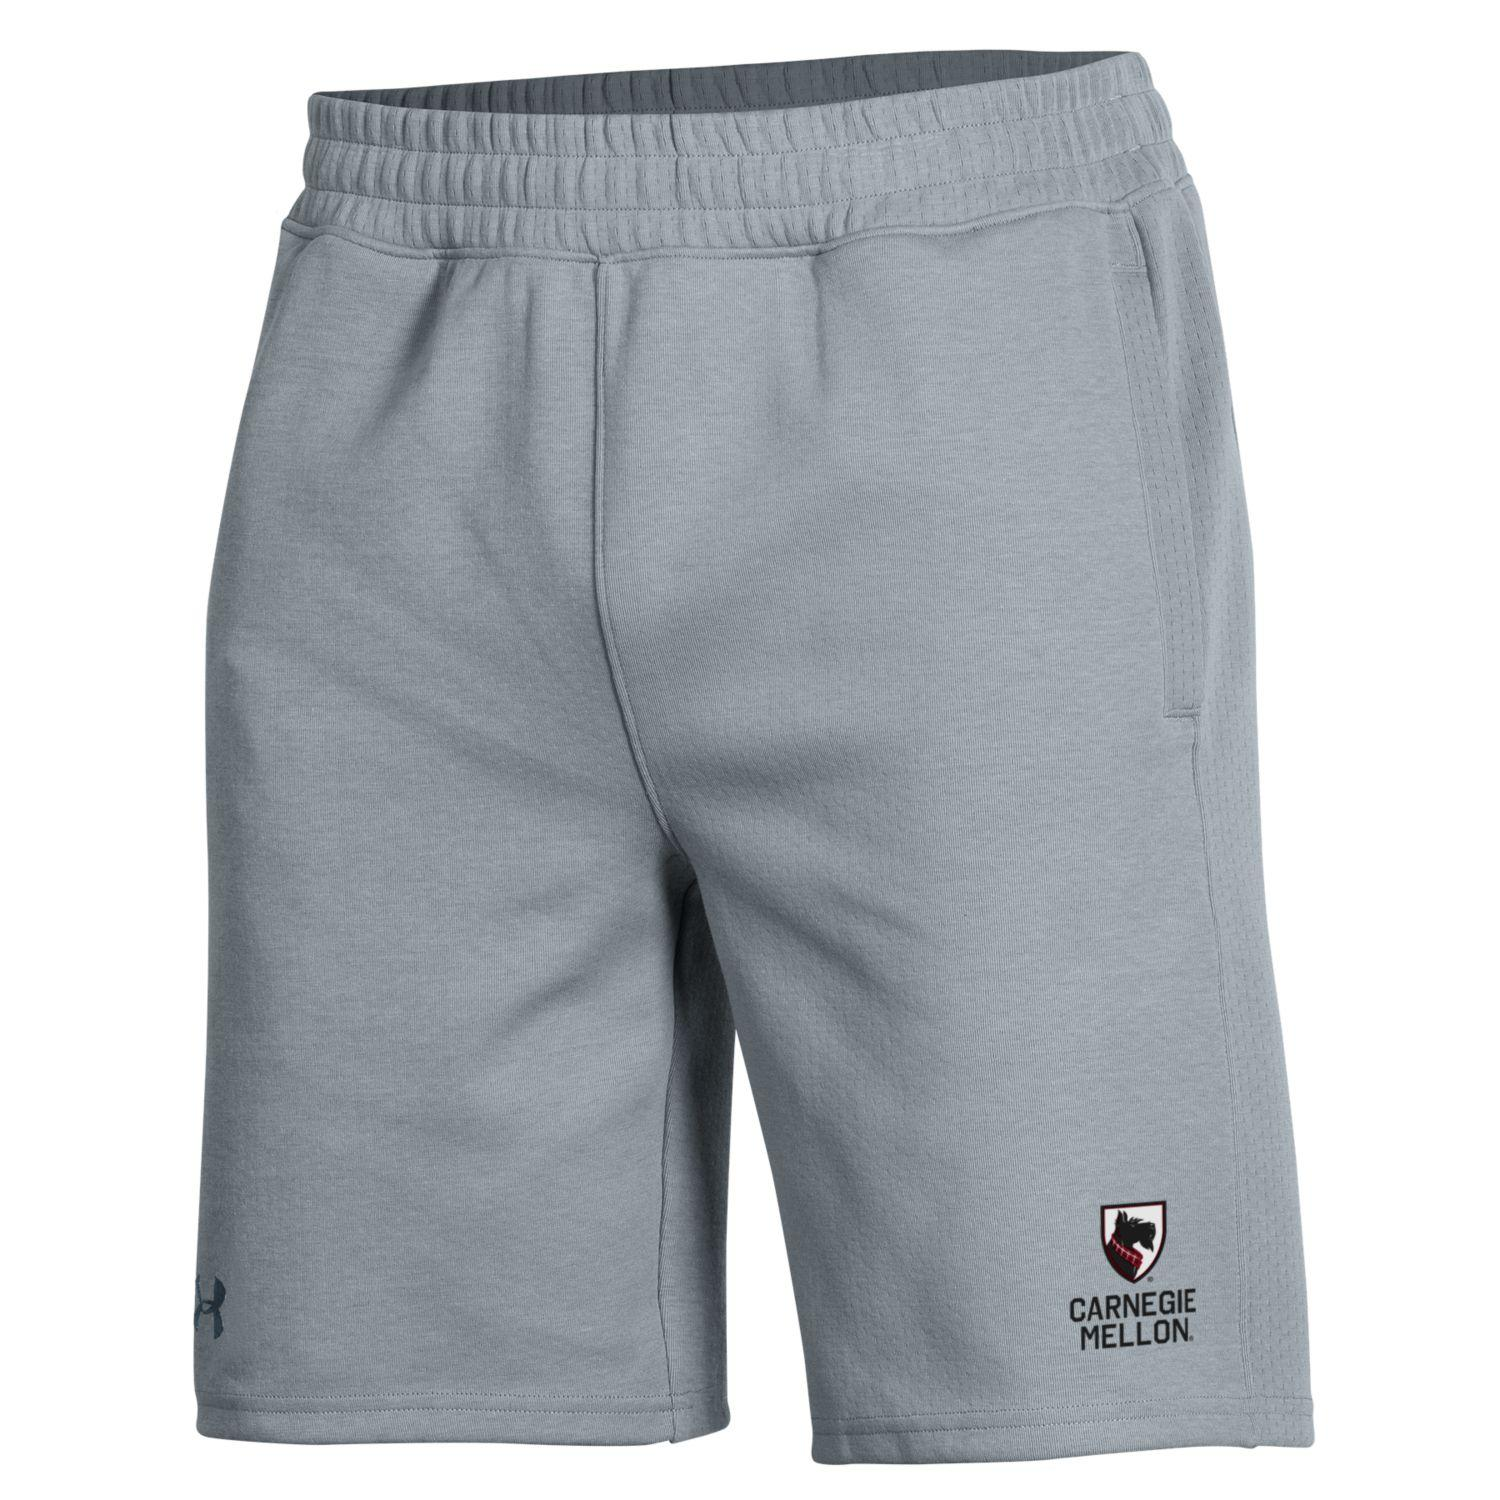 Image For <shorts>Under Armour Loose Fit Knit Shorts: Oxford